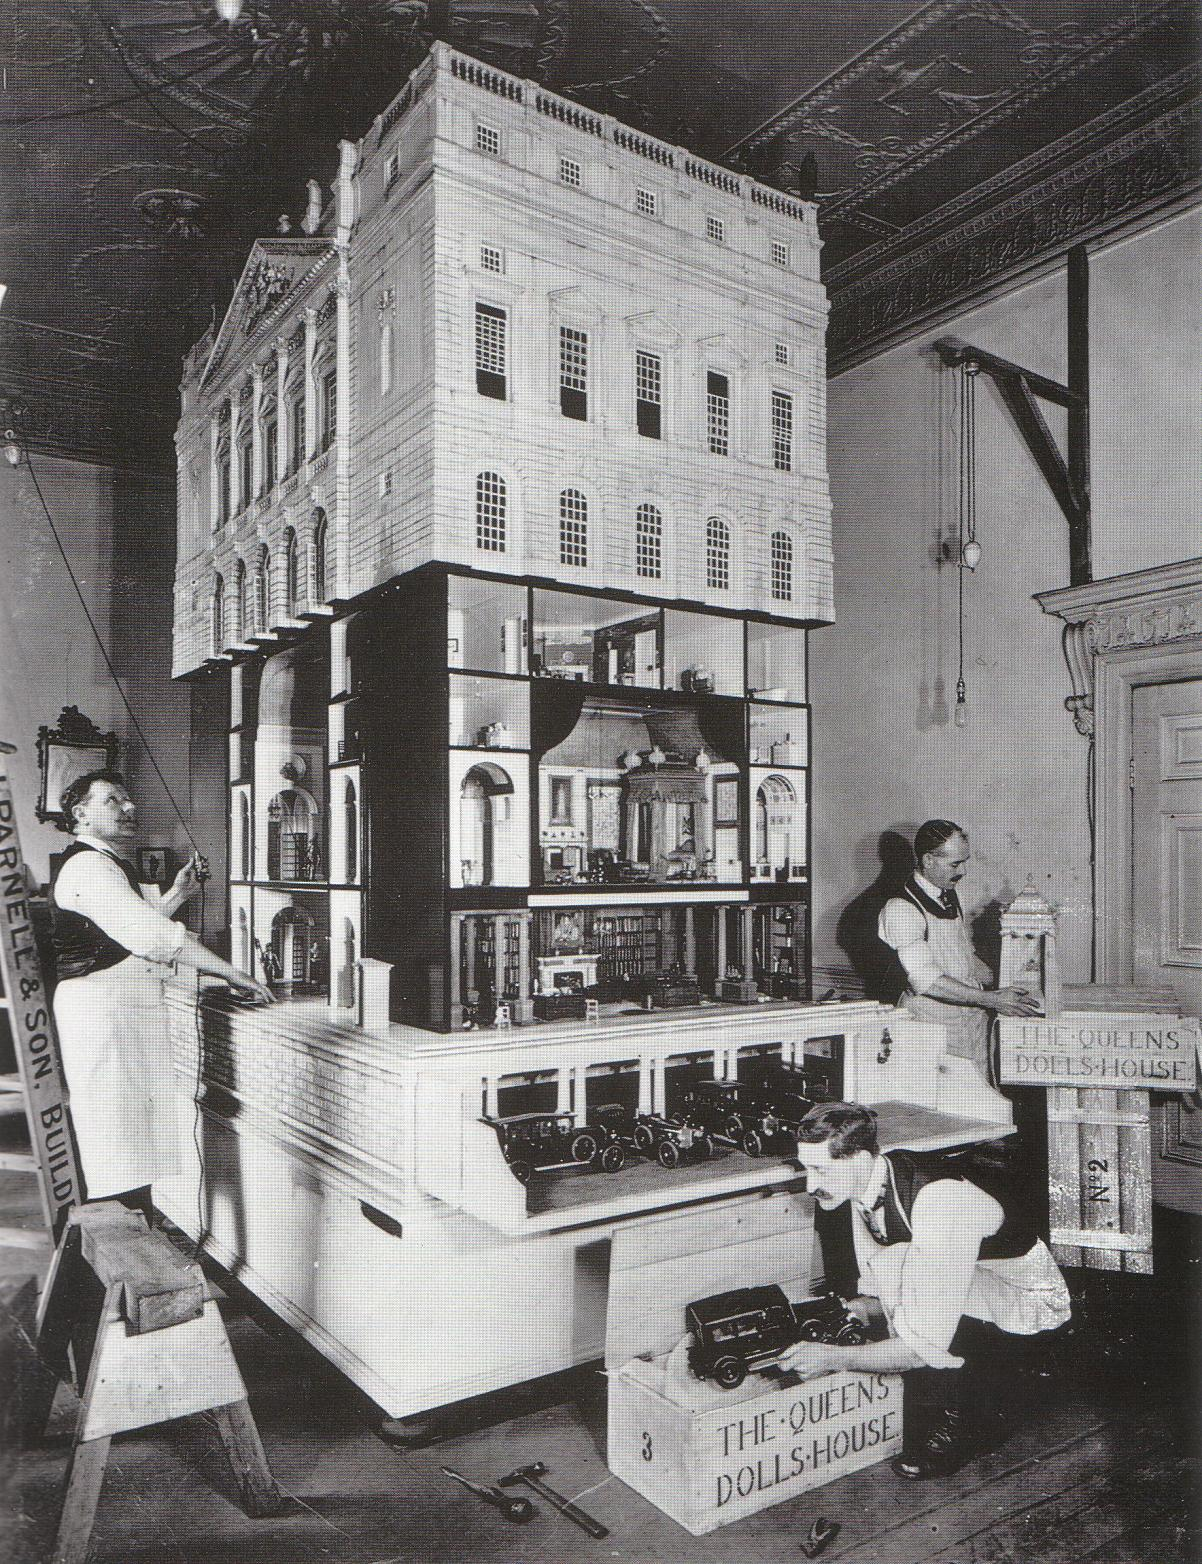 edwin luytens dolls house 1922